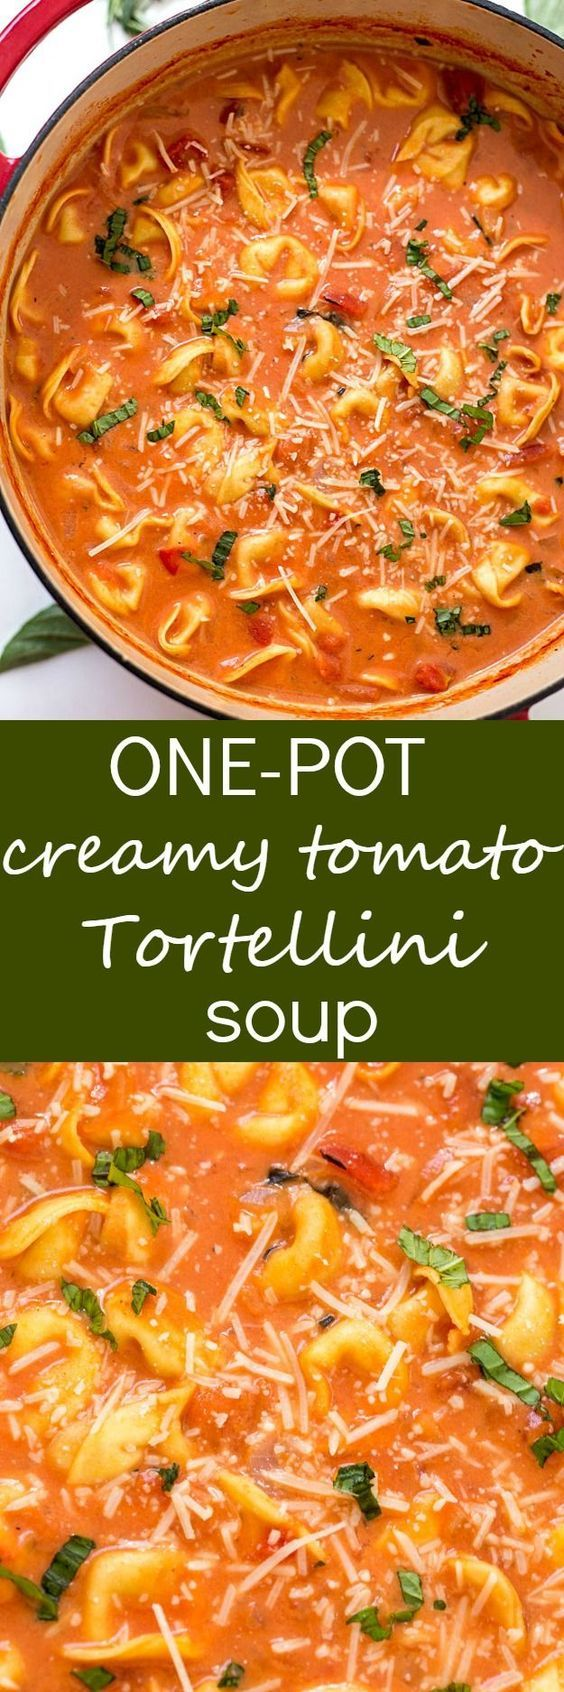 One-Pot Creamy Tomato Tortellini Soup Recipe | Gal on a Mission - The BEST Homemade Soups Recipes - Easy, Quick and Yummy Lunch and Dinner Family Favorites Meals Ideas